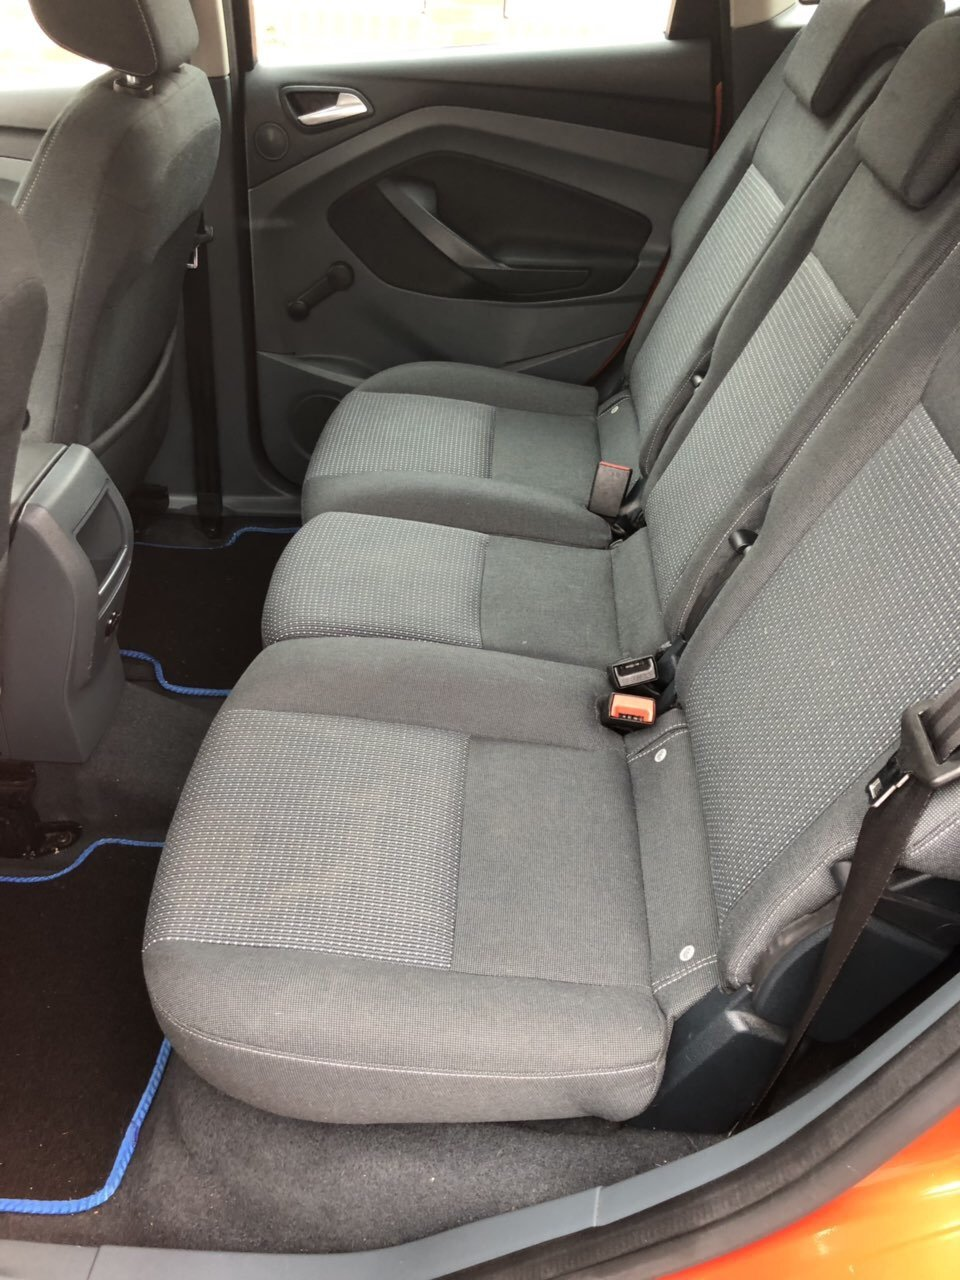 2011 Very good example roomy and economical For Sale (picture 5 of 6)